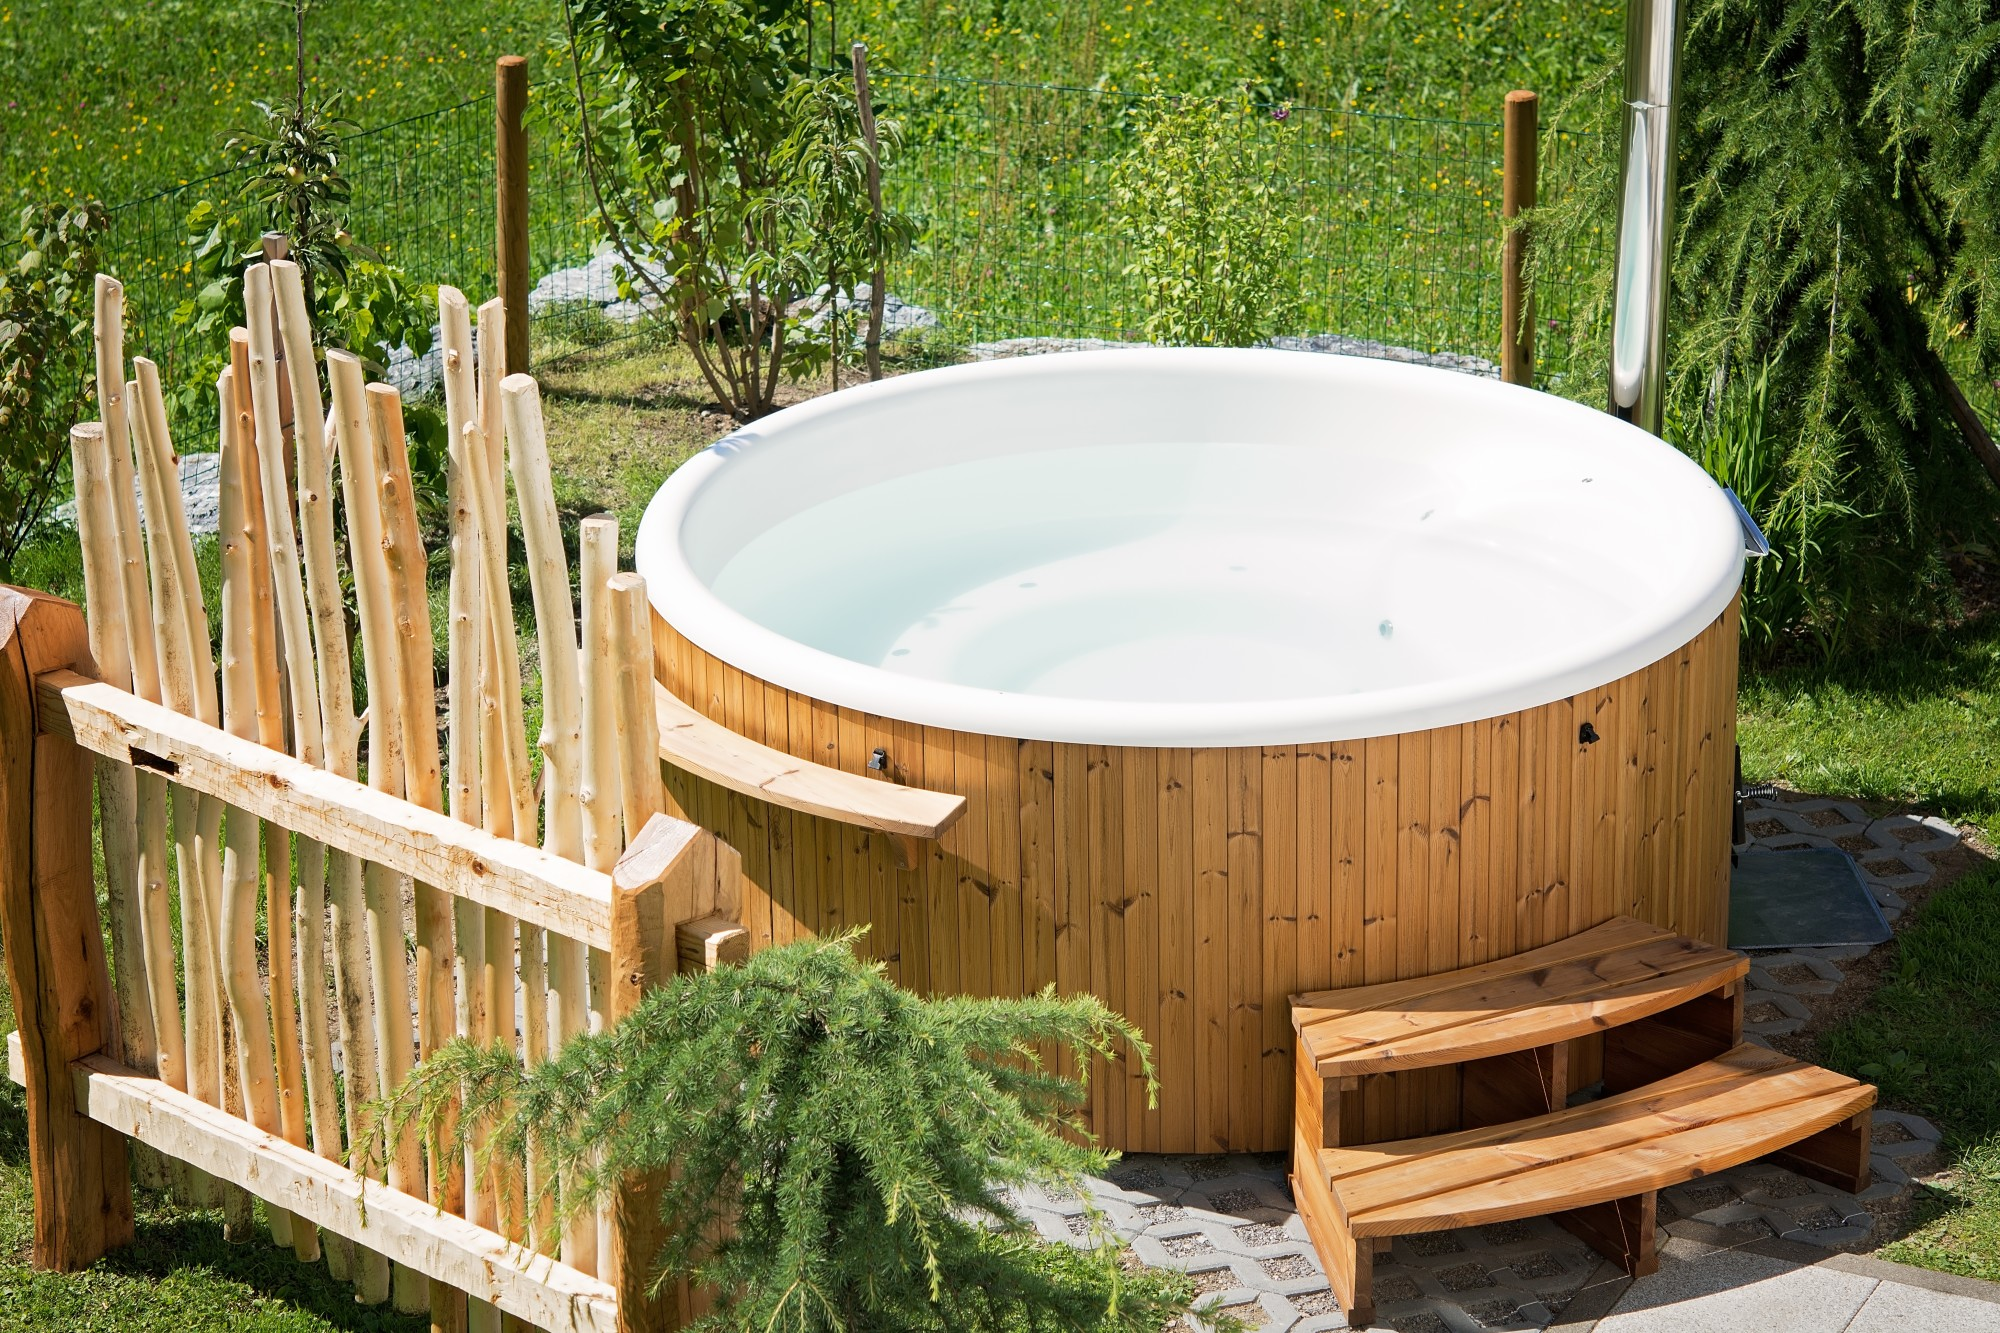 How to Prepare Your Electrical System for Hot Tub Wiring Hot Tubs Wiring on 120v receptacle wiring, dishwasher wiring, knob and tube wiring, hot water electric wiring, security system wiring, do it yourself electrical wiring, dryer wiring, stereo wiring, outdoor telephone box wiring,